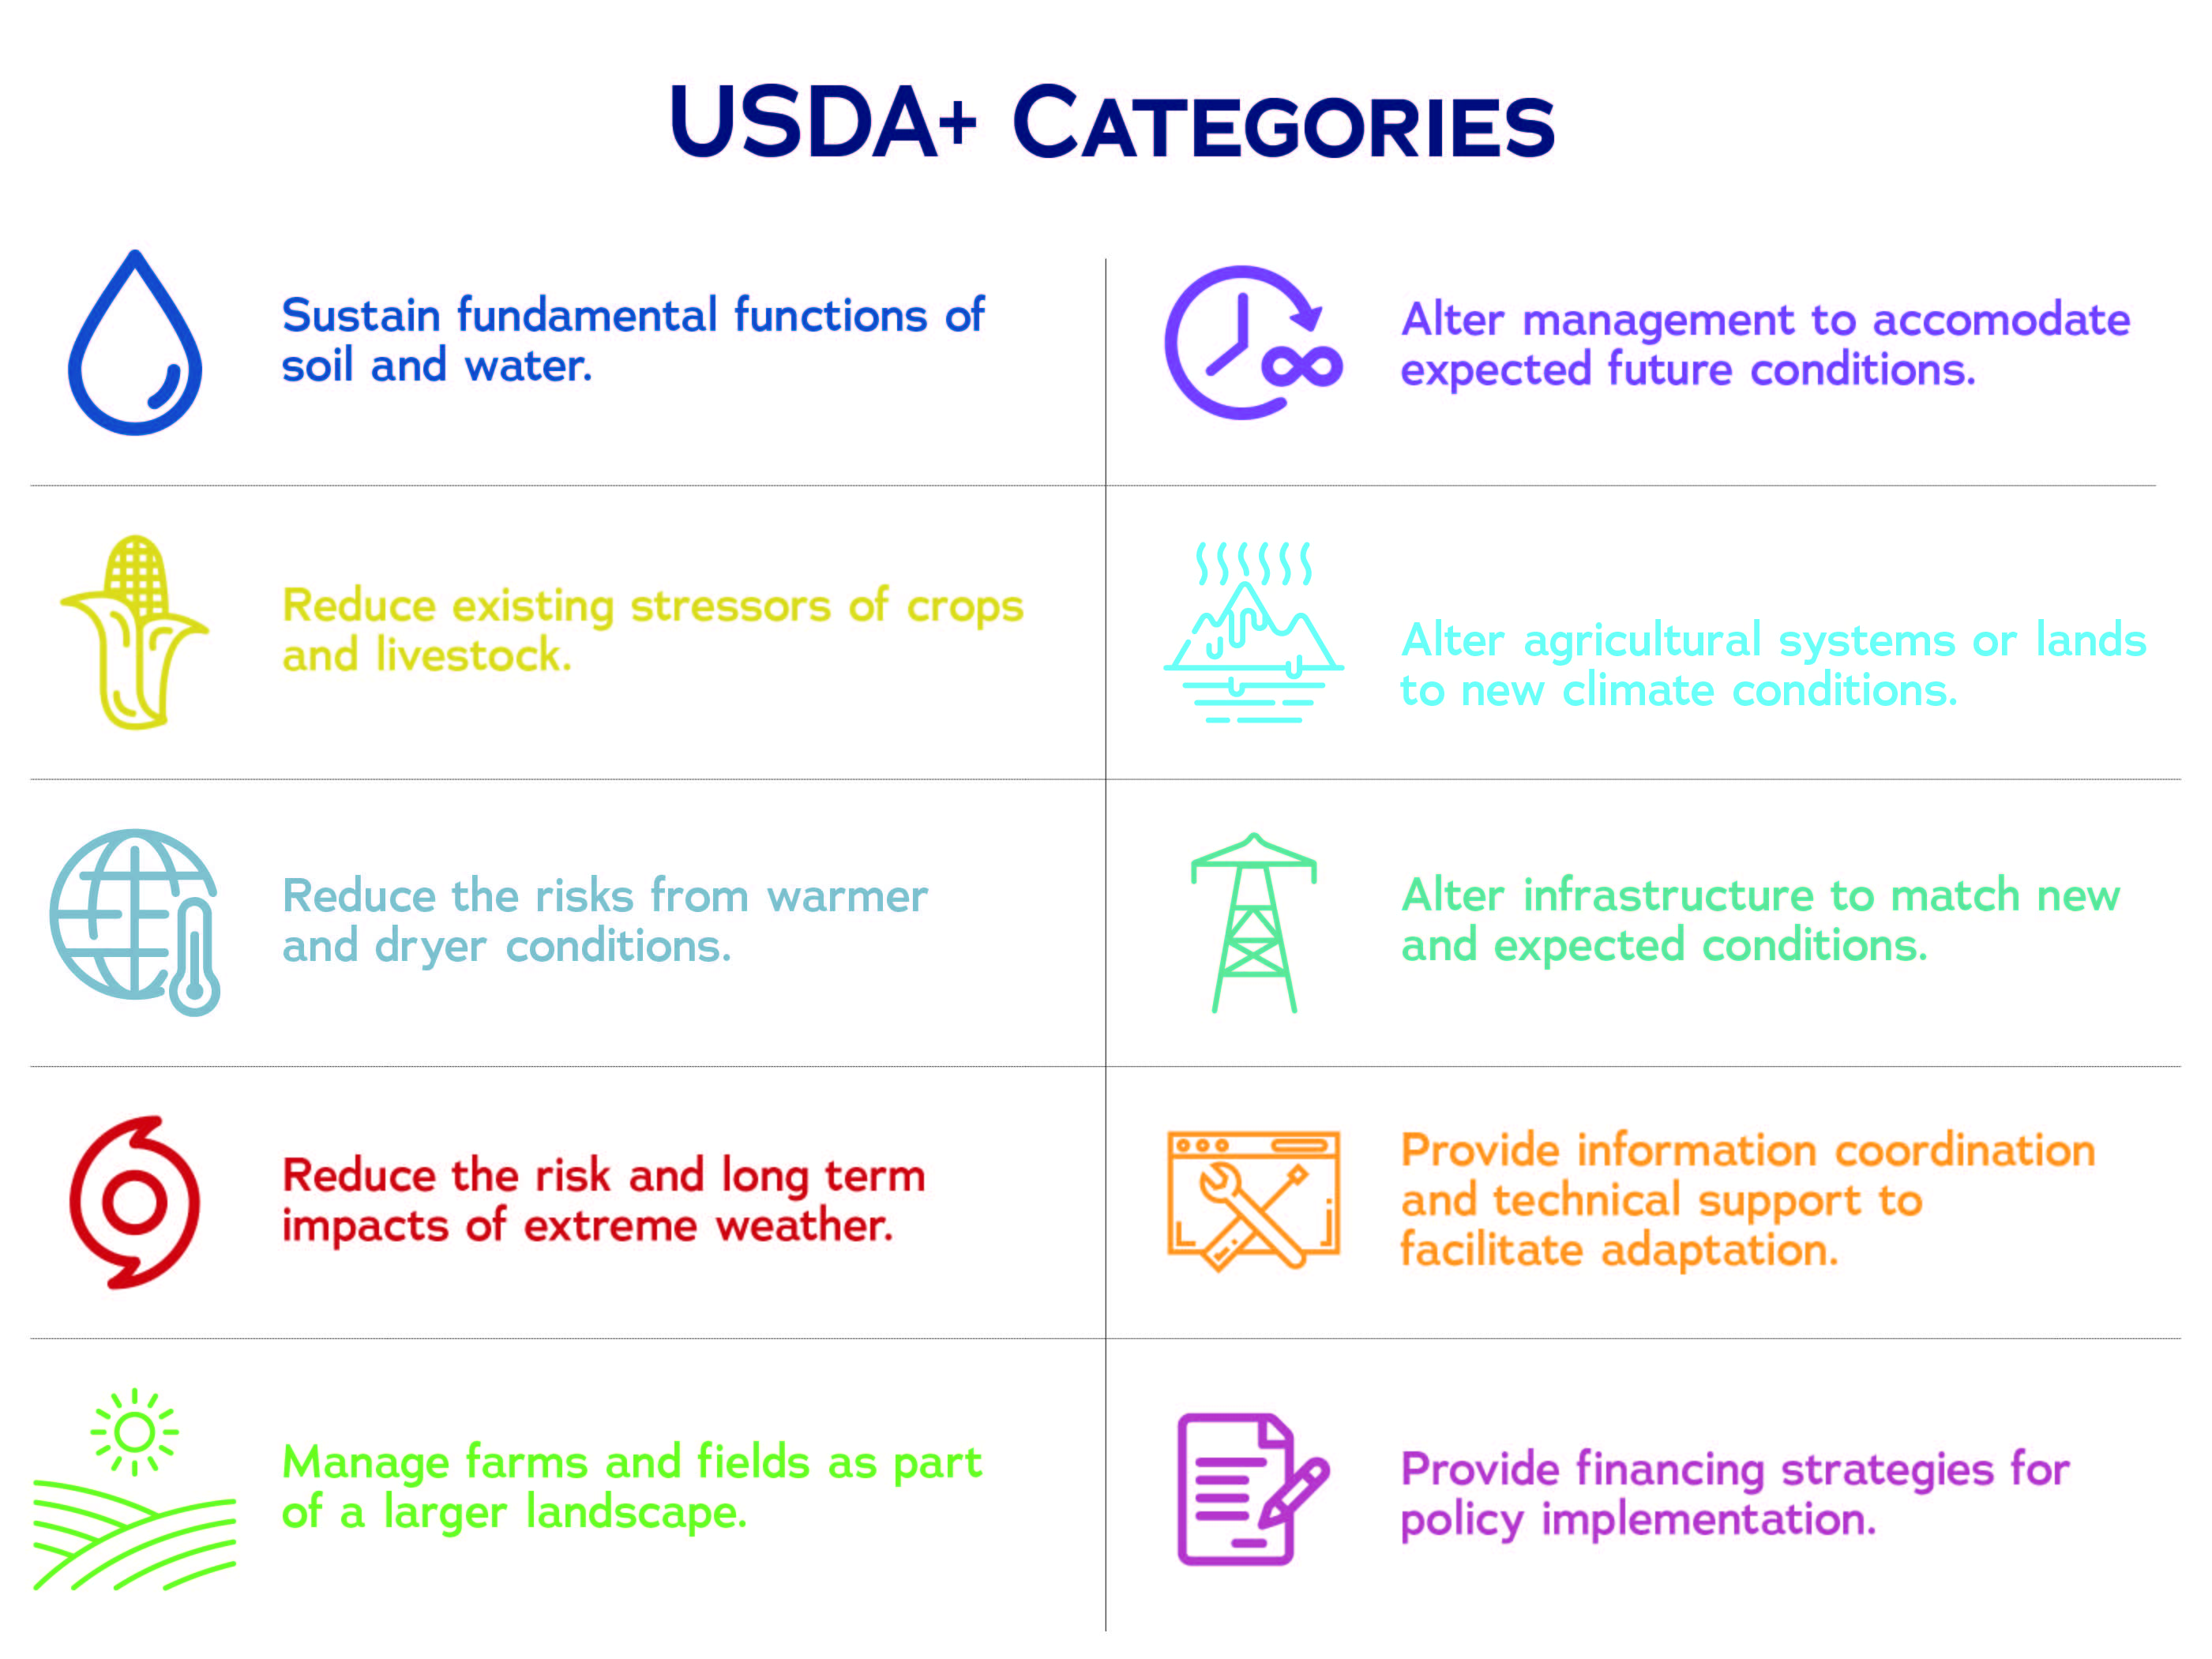 USDA+ categories